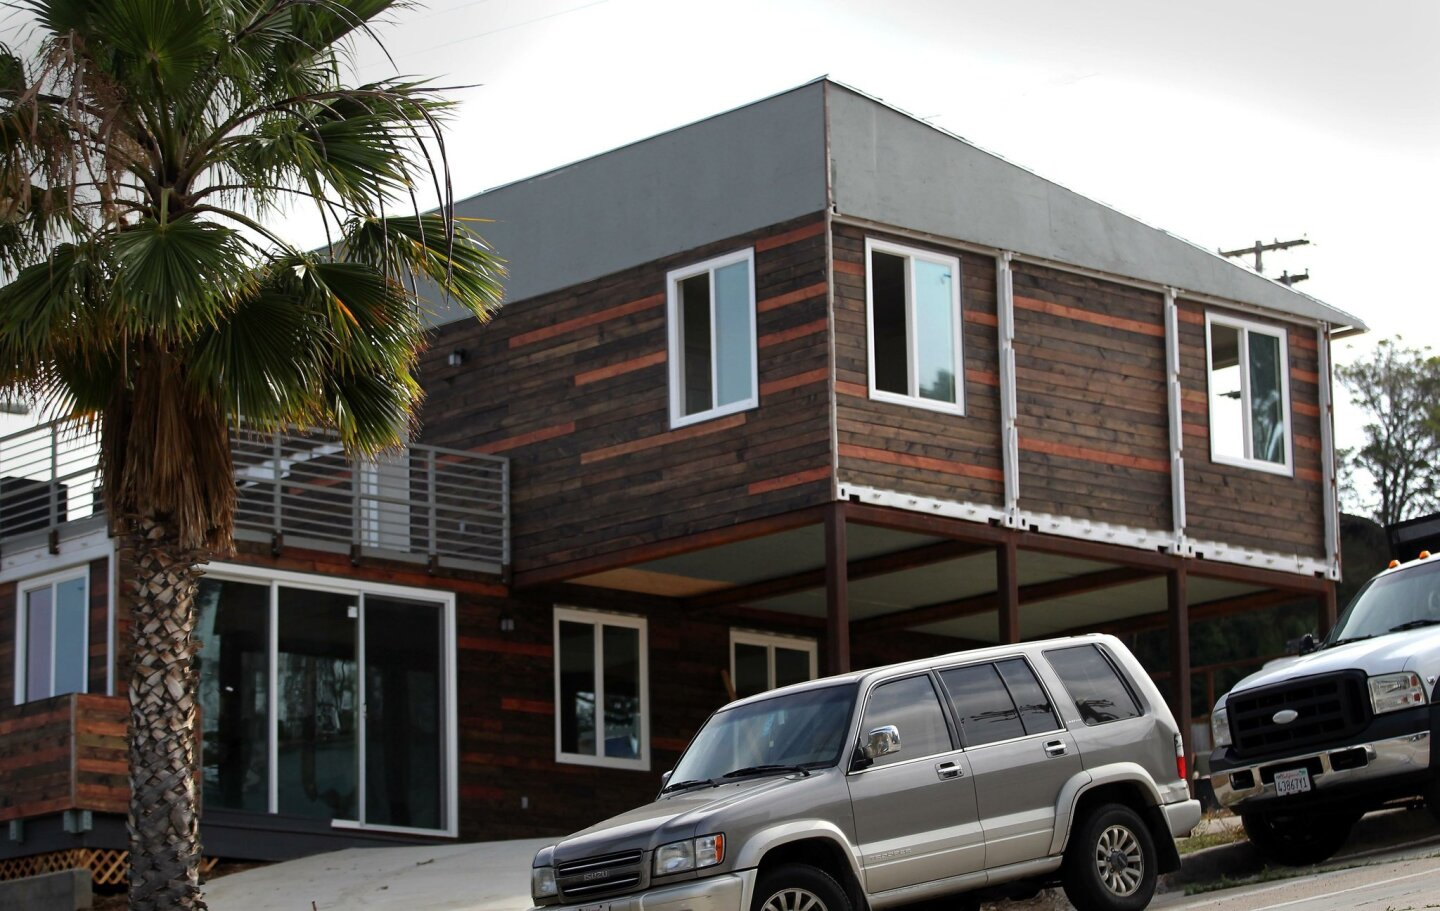 The container house is located on a steep part of Island Avenue.